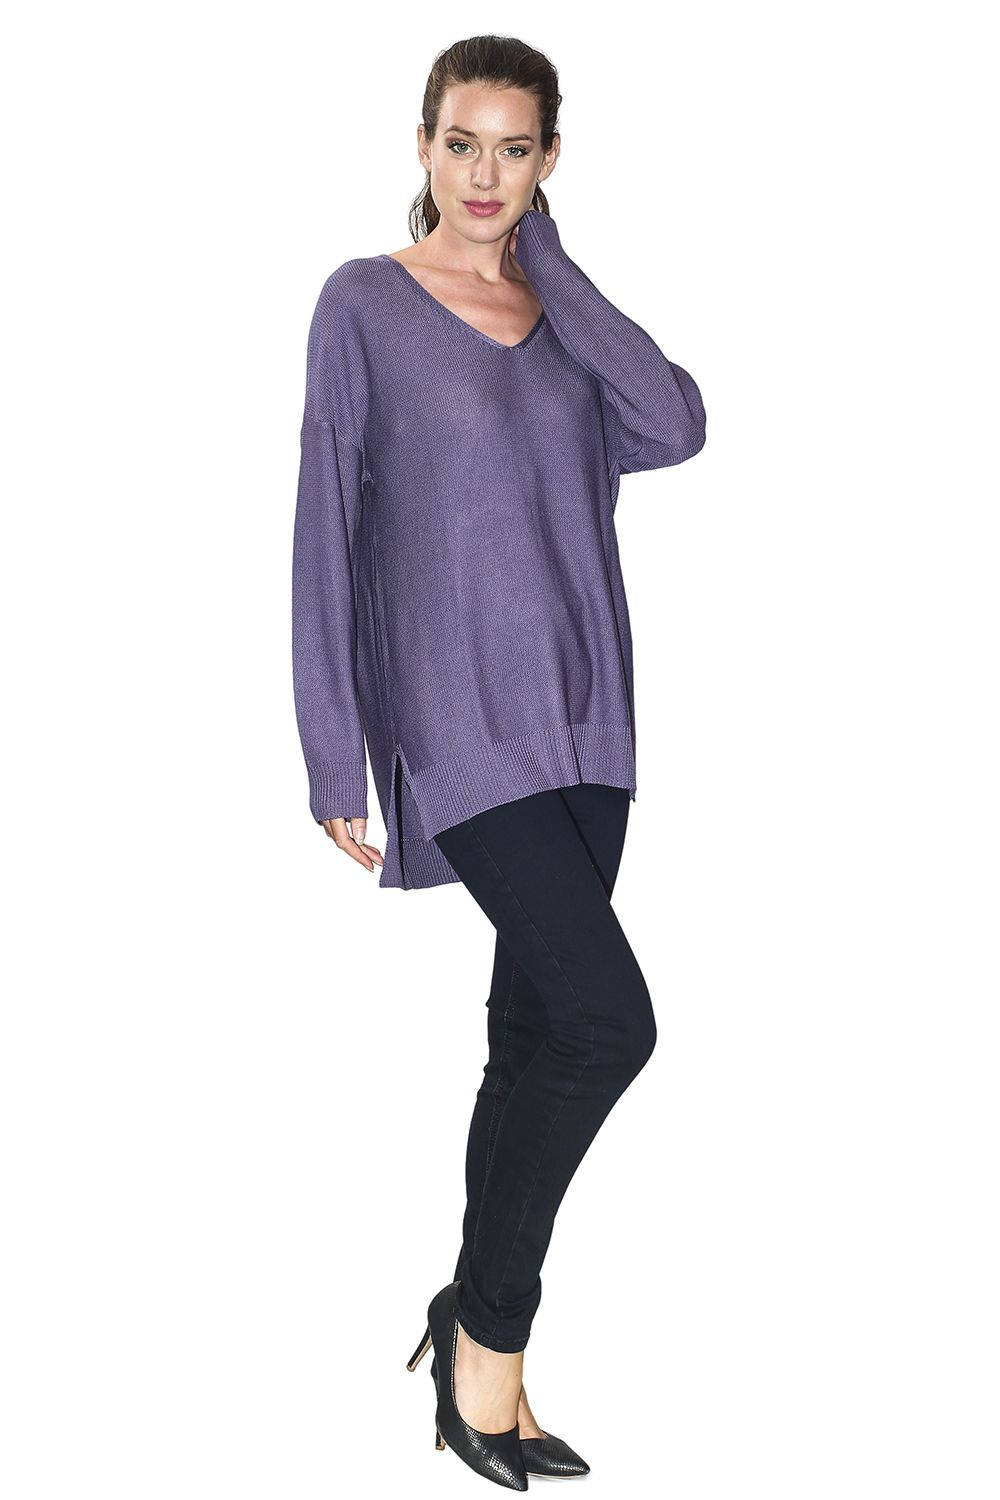 Assuili Longline V-neck Sweater with Side Splits in Blue